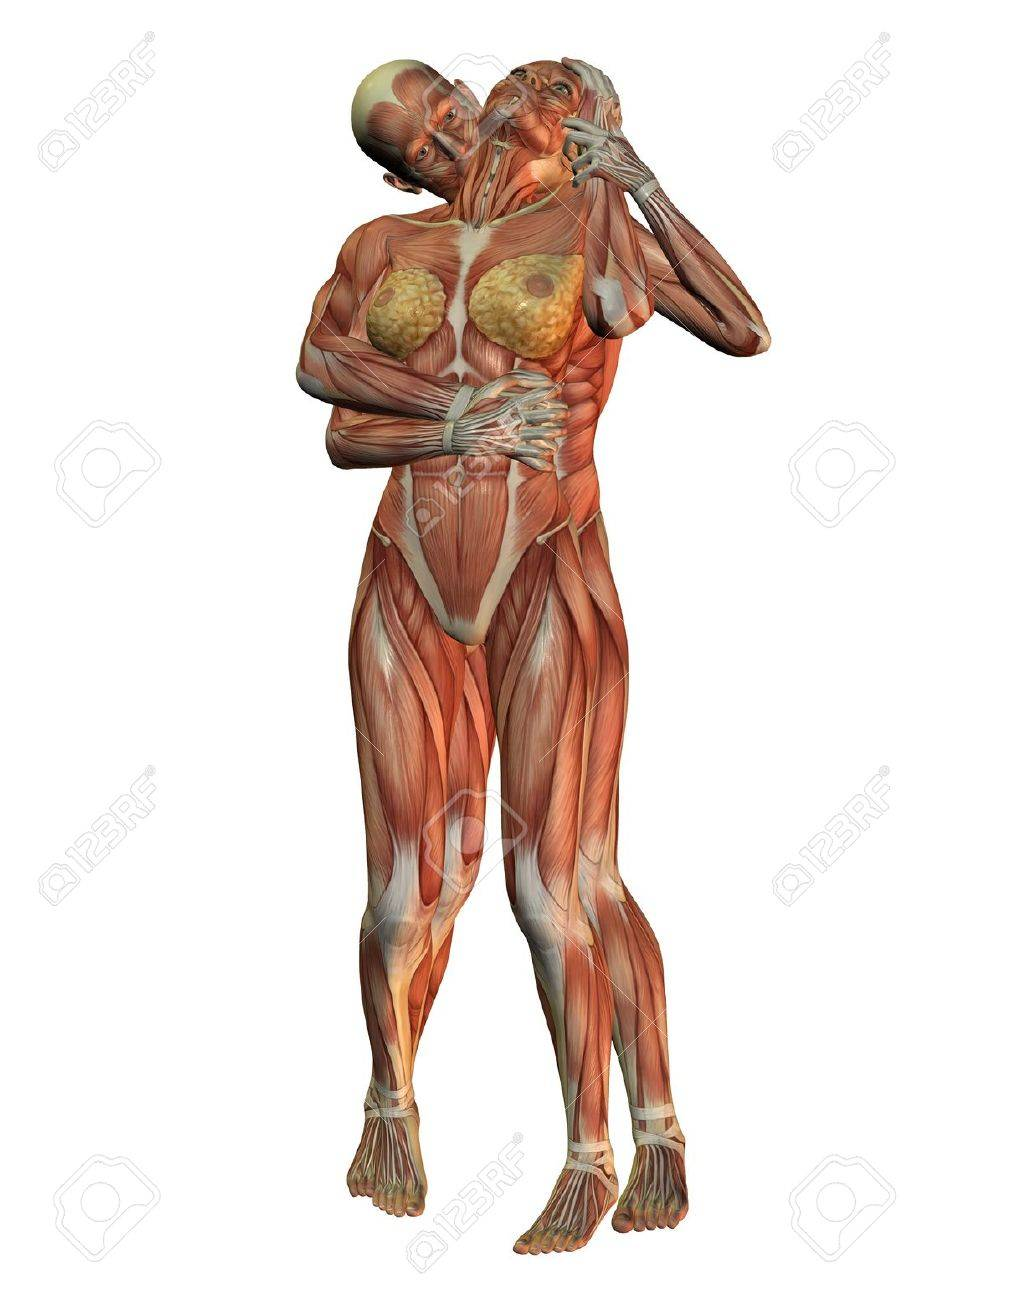 3d Rendering Of The Anatomy And Muscular Structure Of The Human